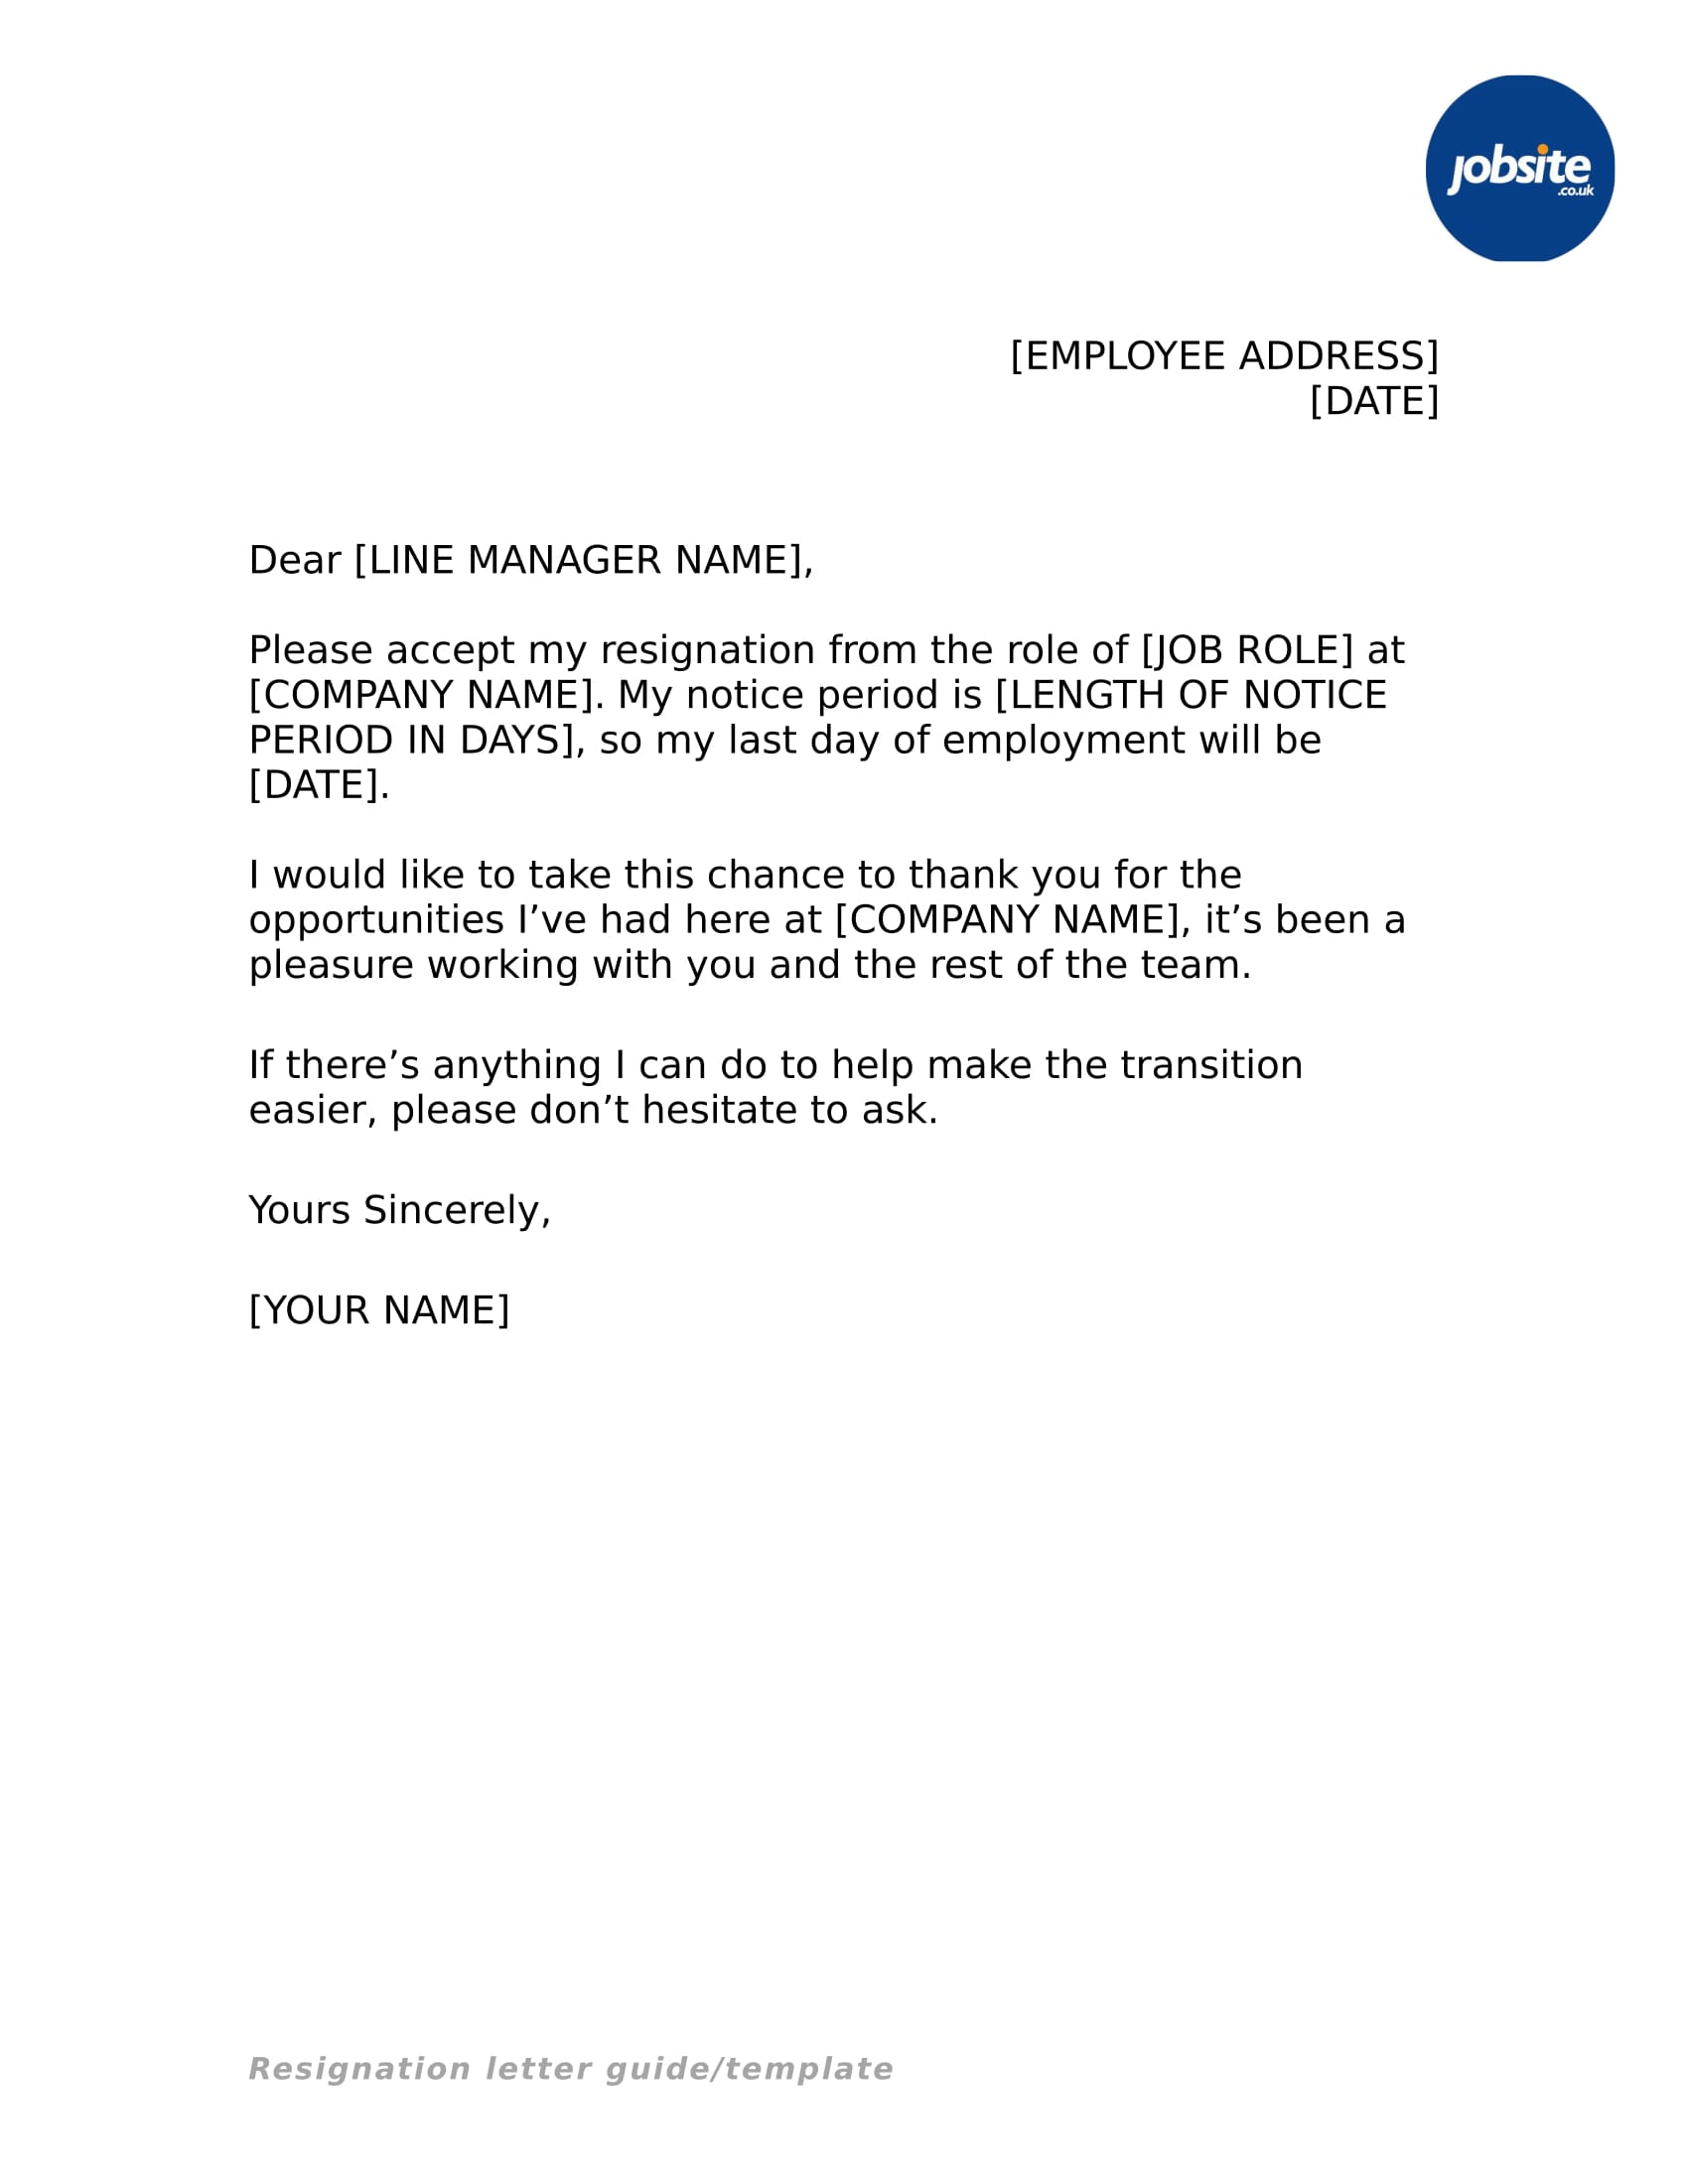 23 Simple Resignation Letter Examples Pdf Word Retirement